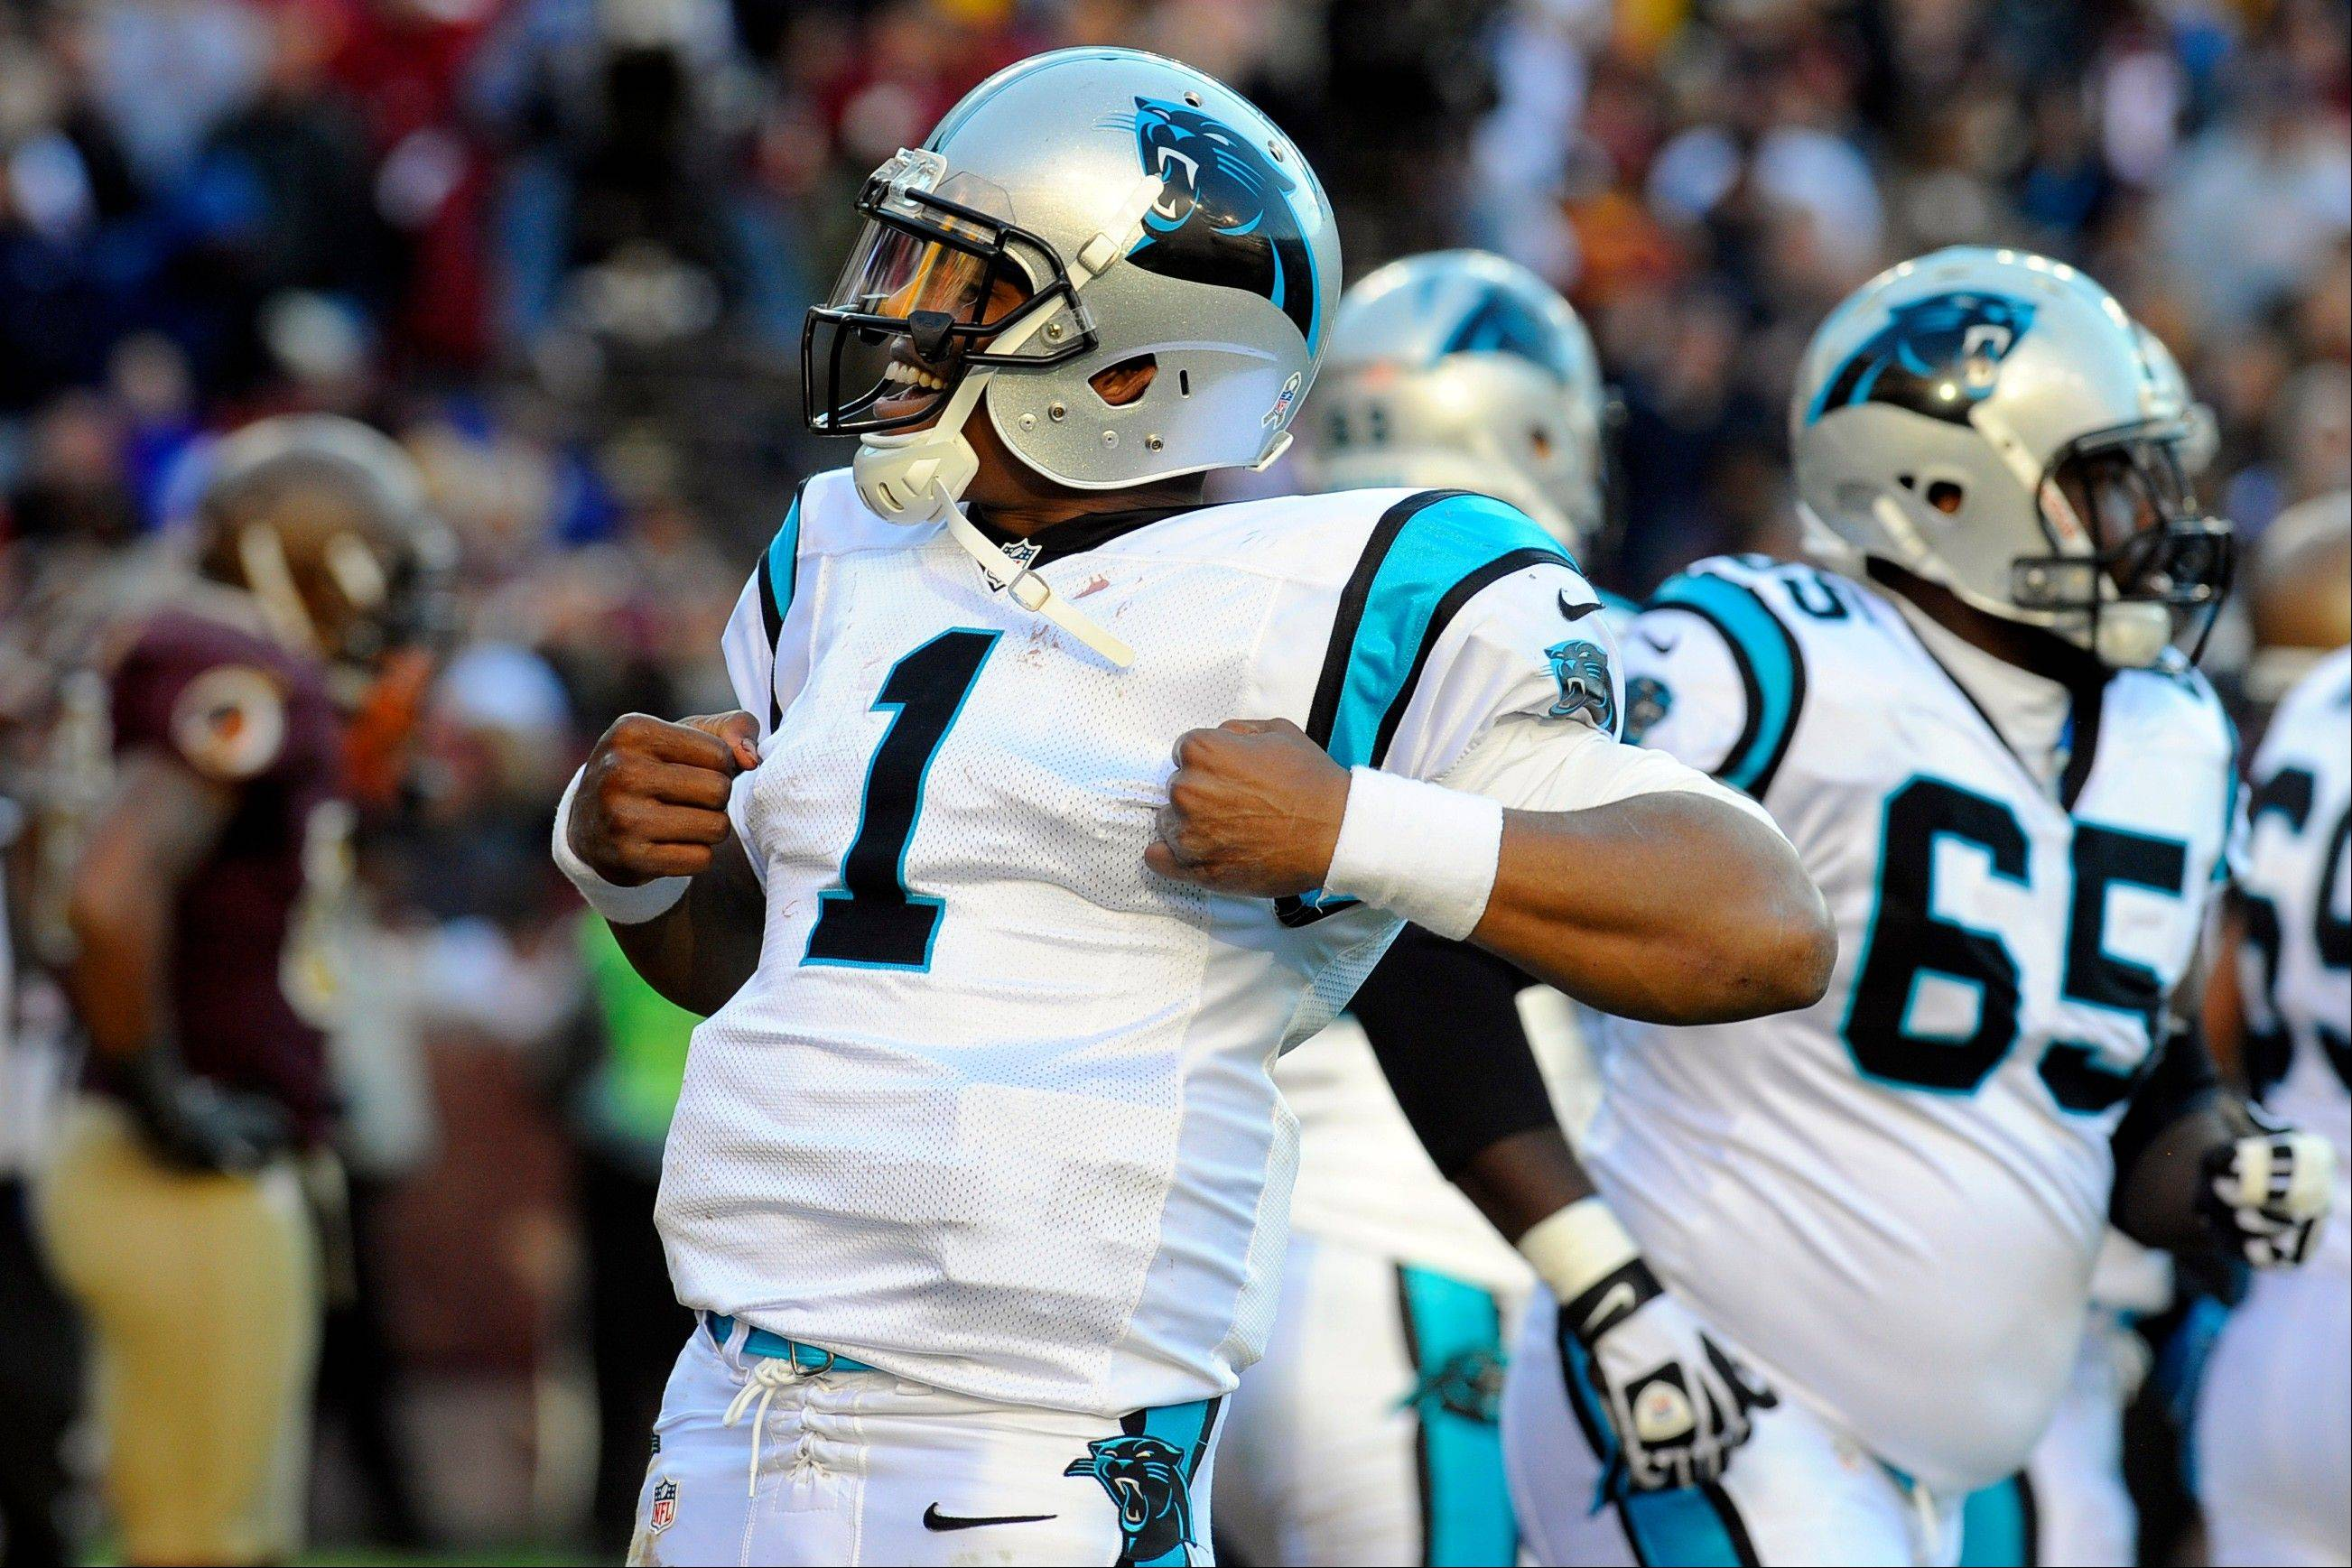 Carolina Panthers quarterback Cam Newton (1) reacts after his touchdown Sunday during the second half against the Washington Redskins in Landover, Md.